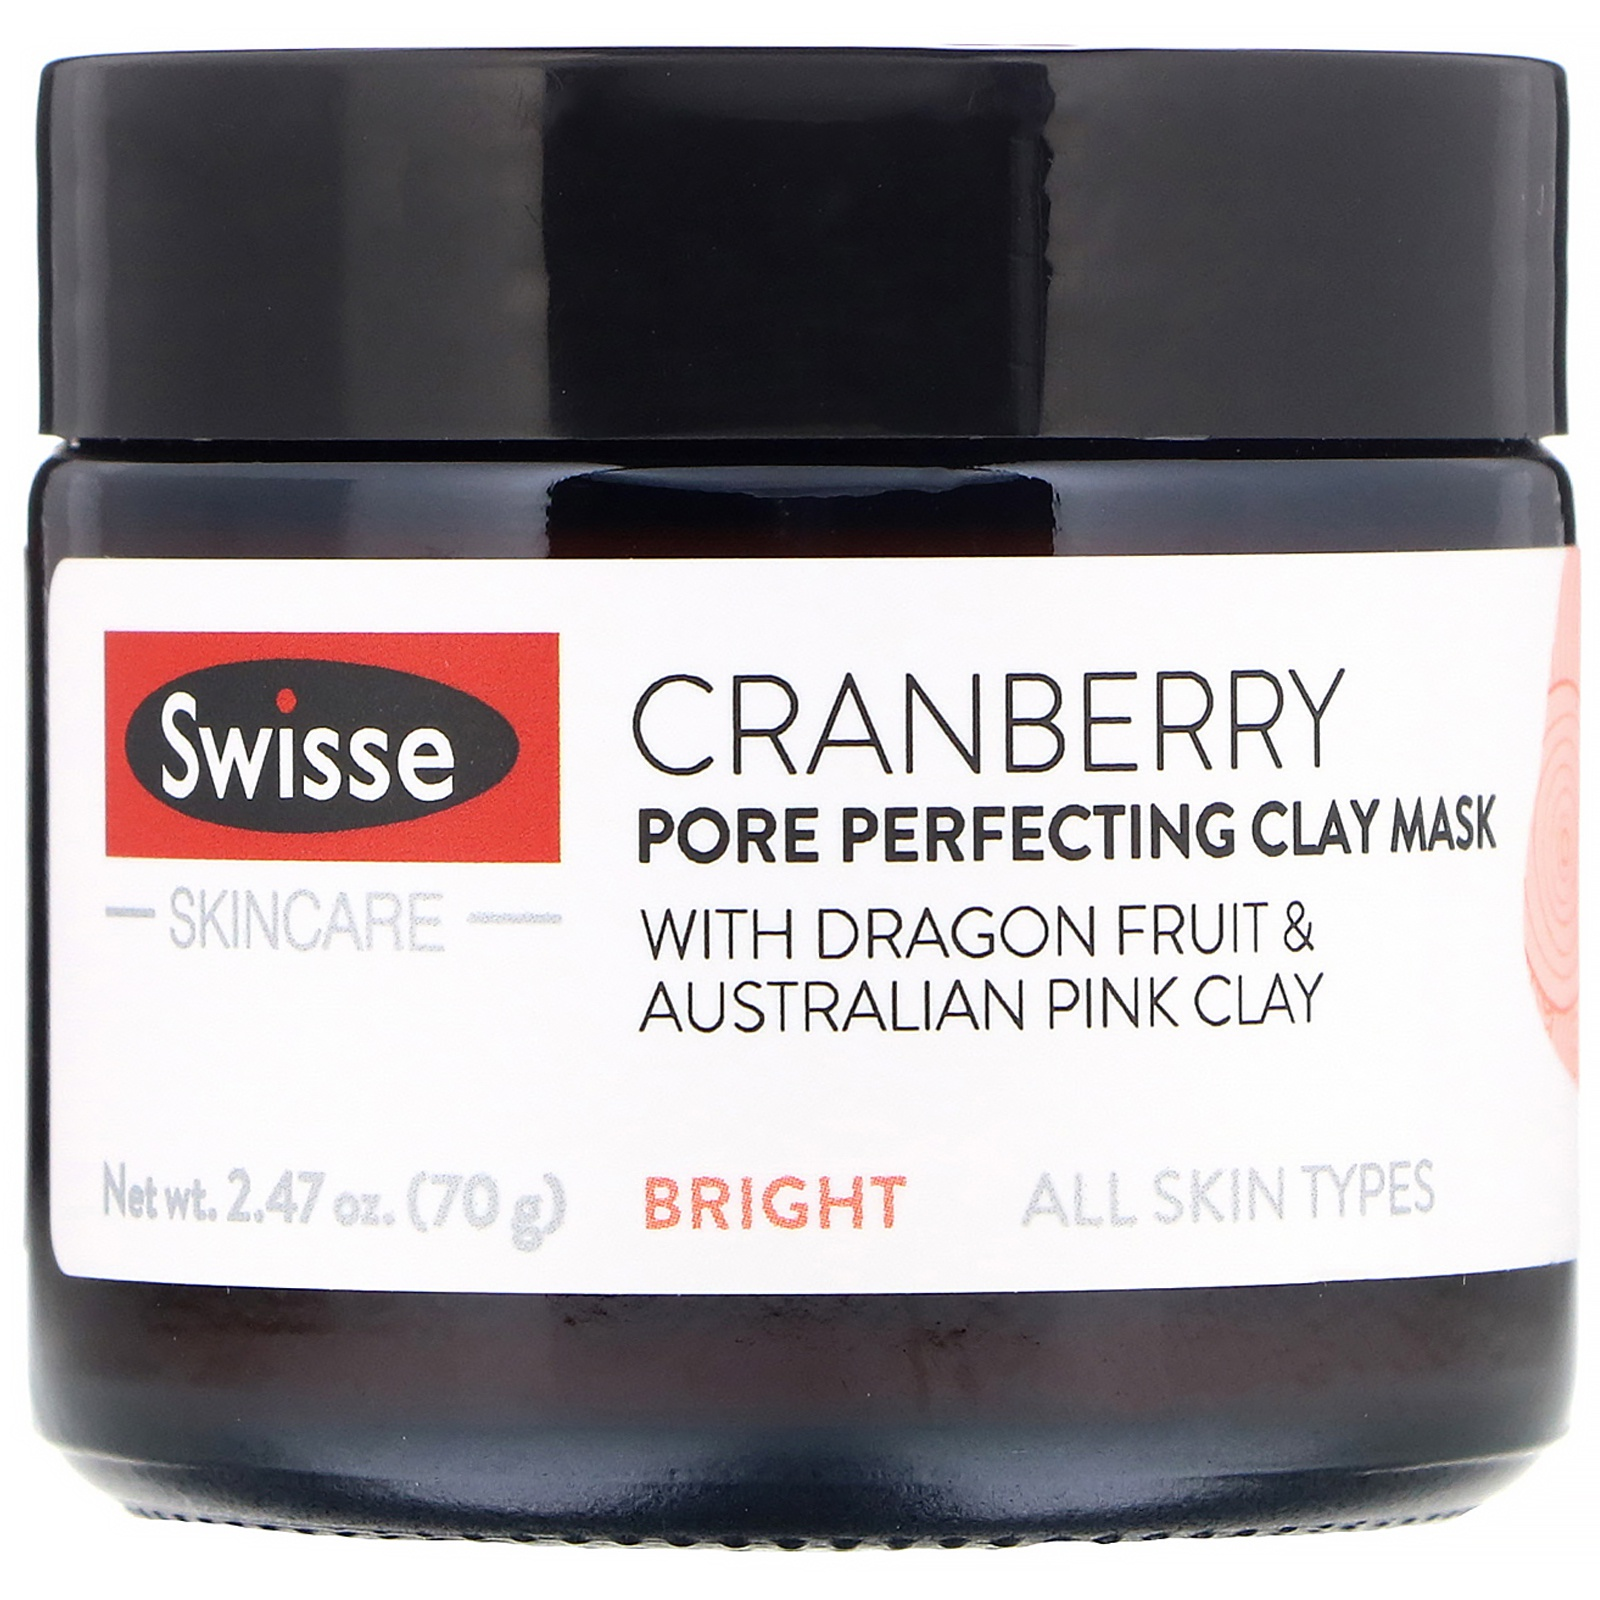 Swisse Skincare Cranberry Pore Perfecting Clay Mask